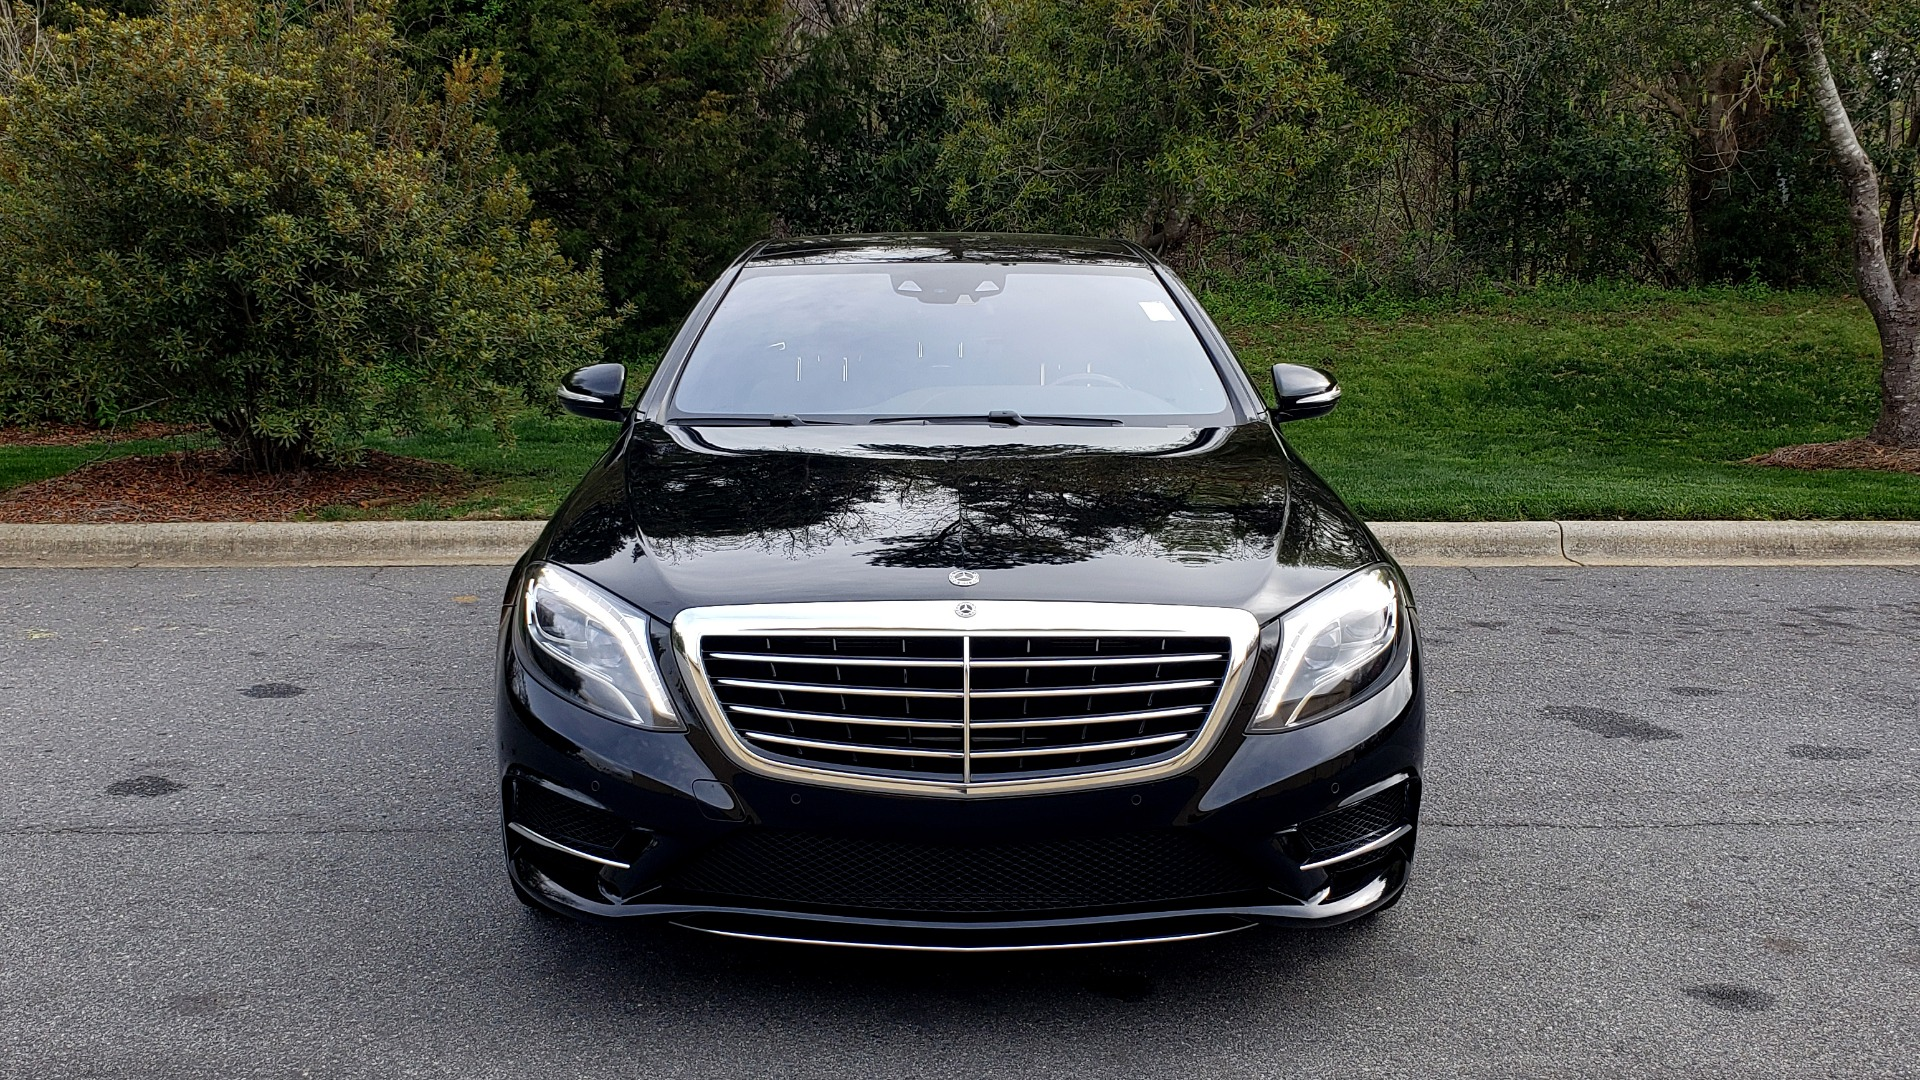 Used 2017 Mercedes-Benz S-CLASS S 550 4MATIC SPORT / PREM PKG / WARMTH & COMFORT / KEYLESS-GO for sale Sold at Formula Imports in Charlotte NC 28227 25